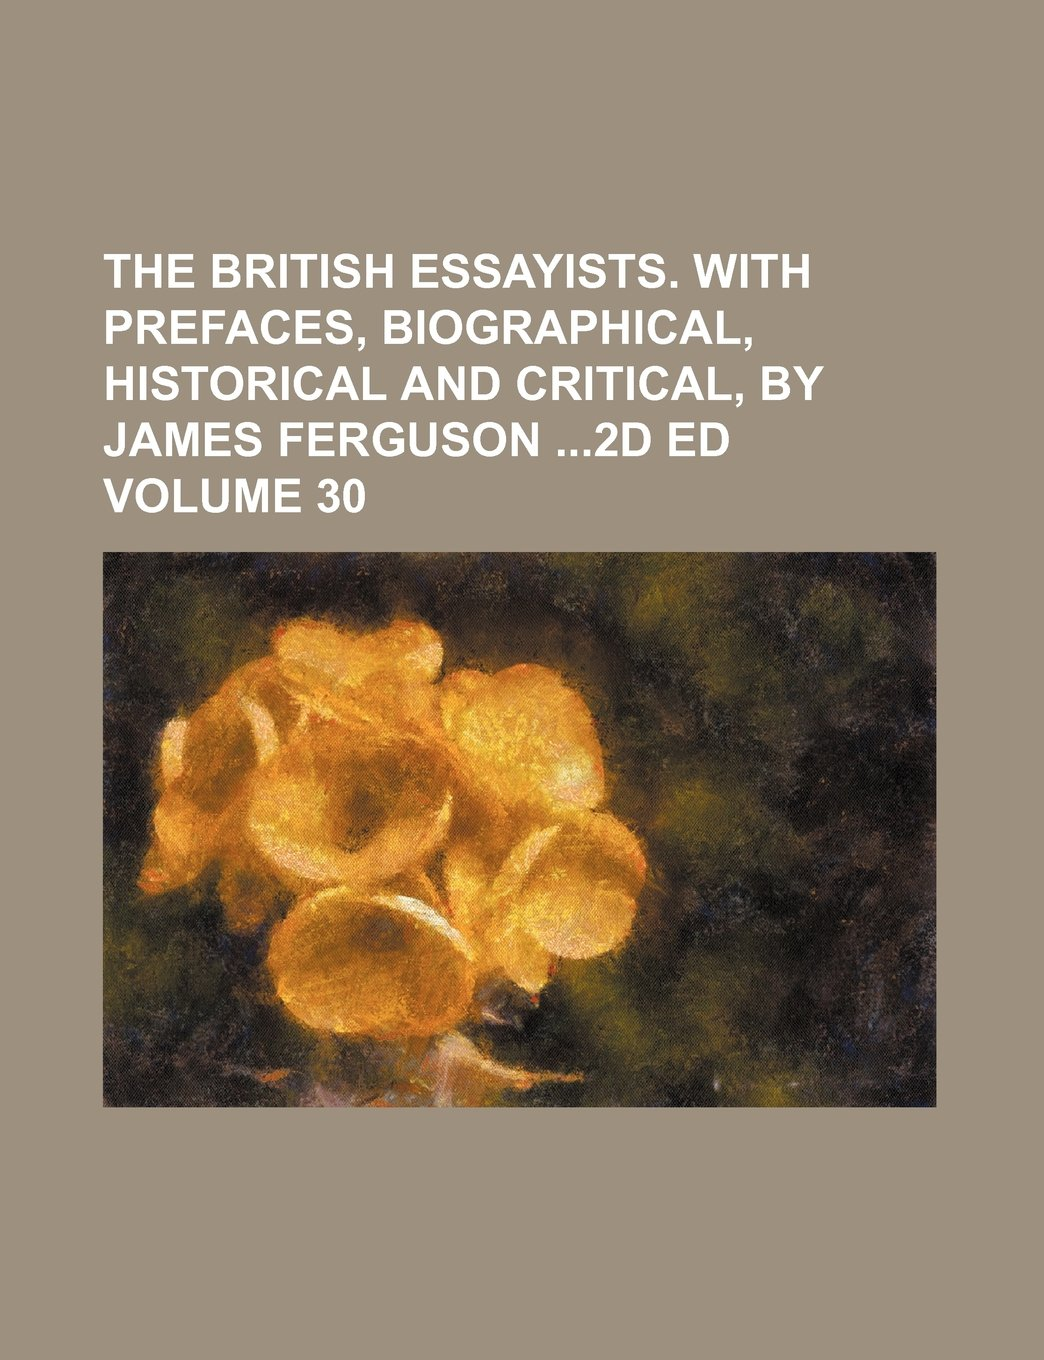 The British essayists. With prefaces, biographical, historical and critical, by James Ferguson 2d ed Volume 30 ebook